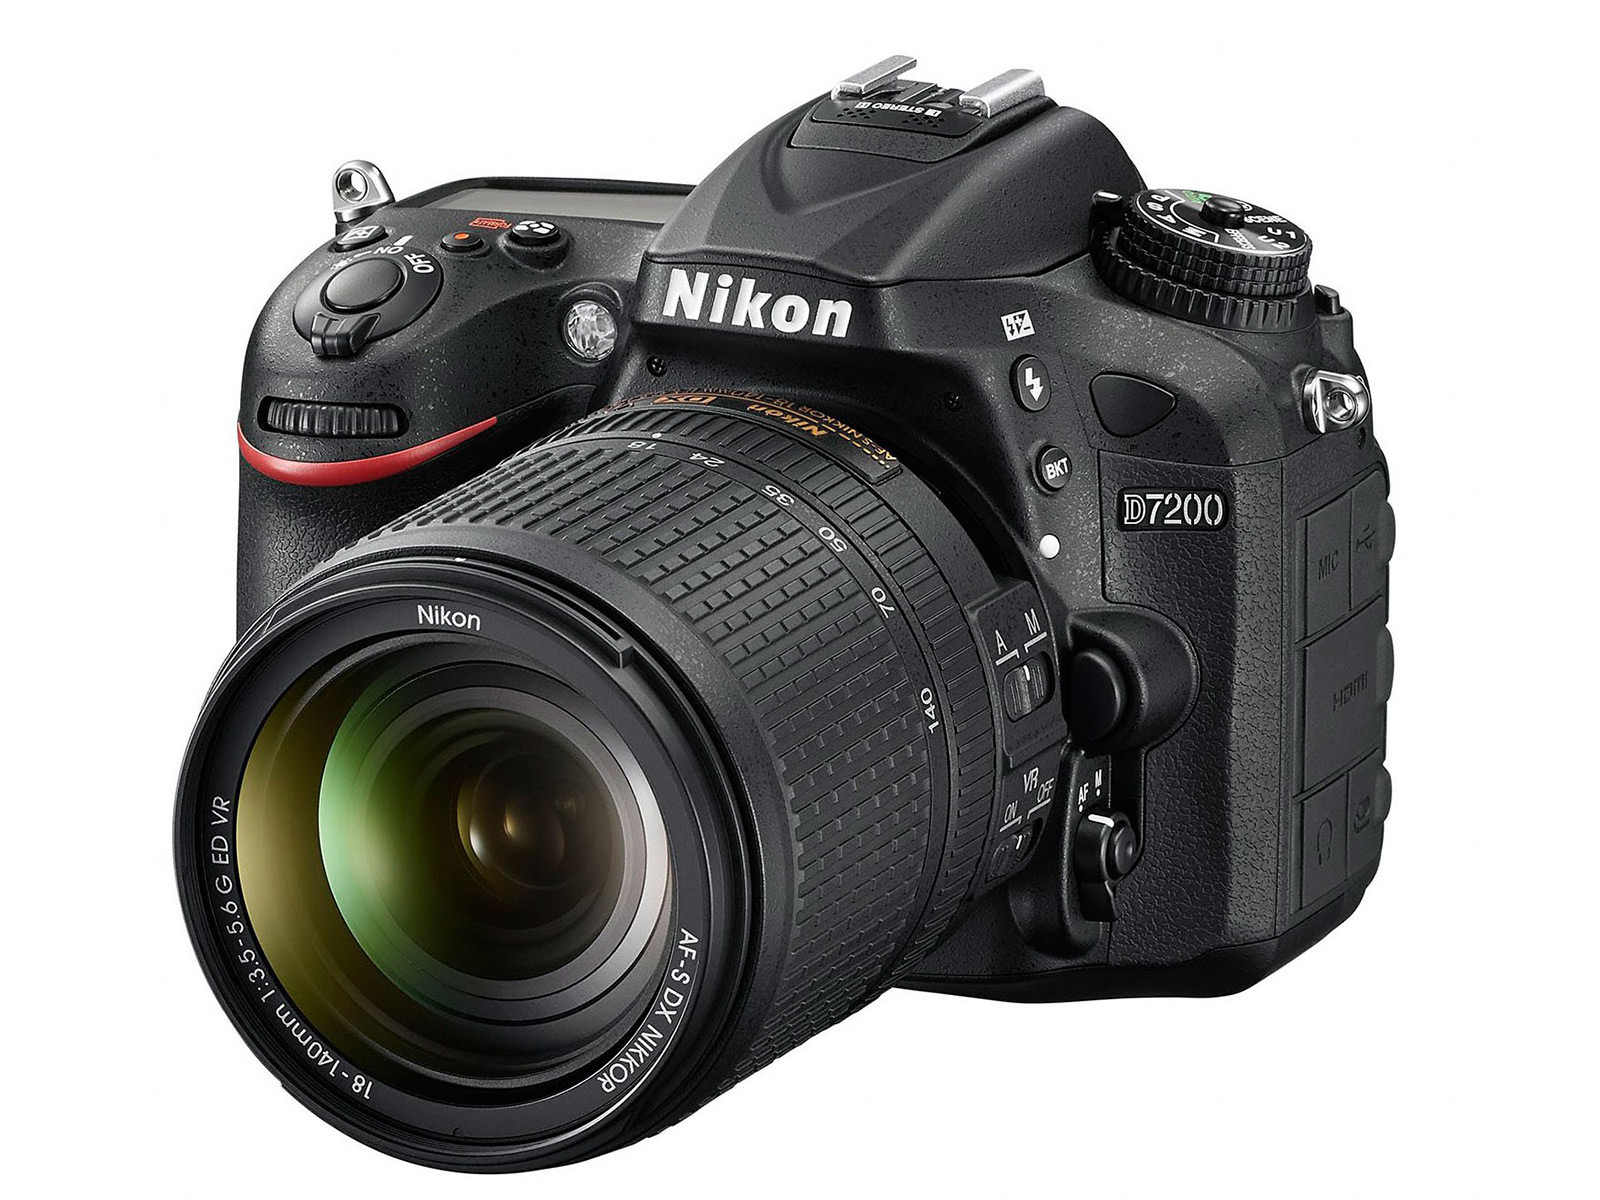 Image result for 6. Nikon D7200